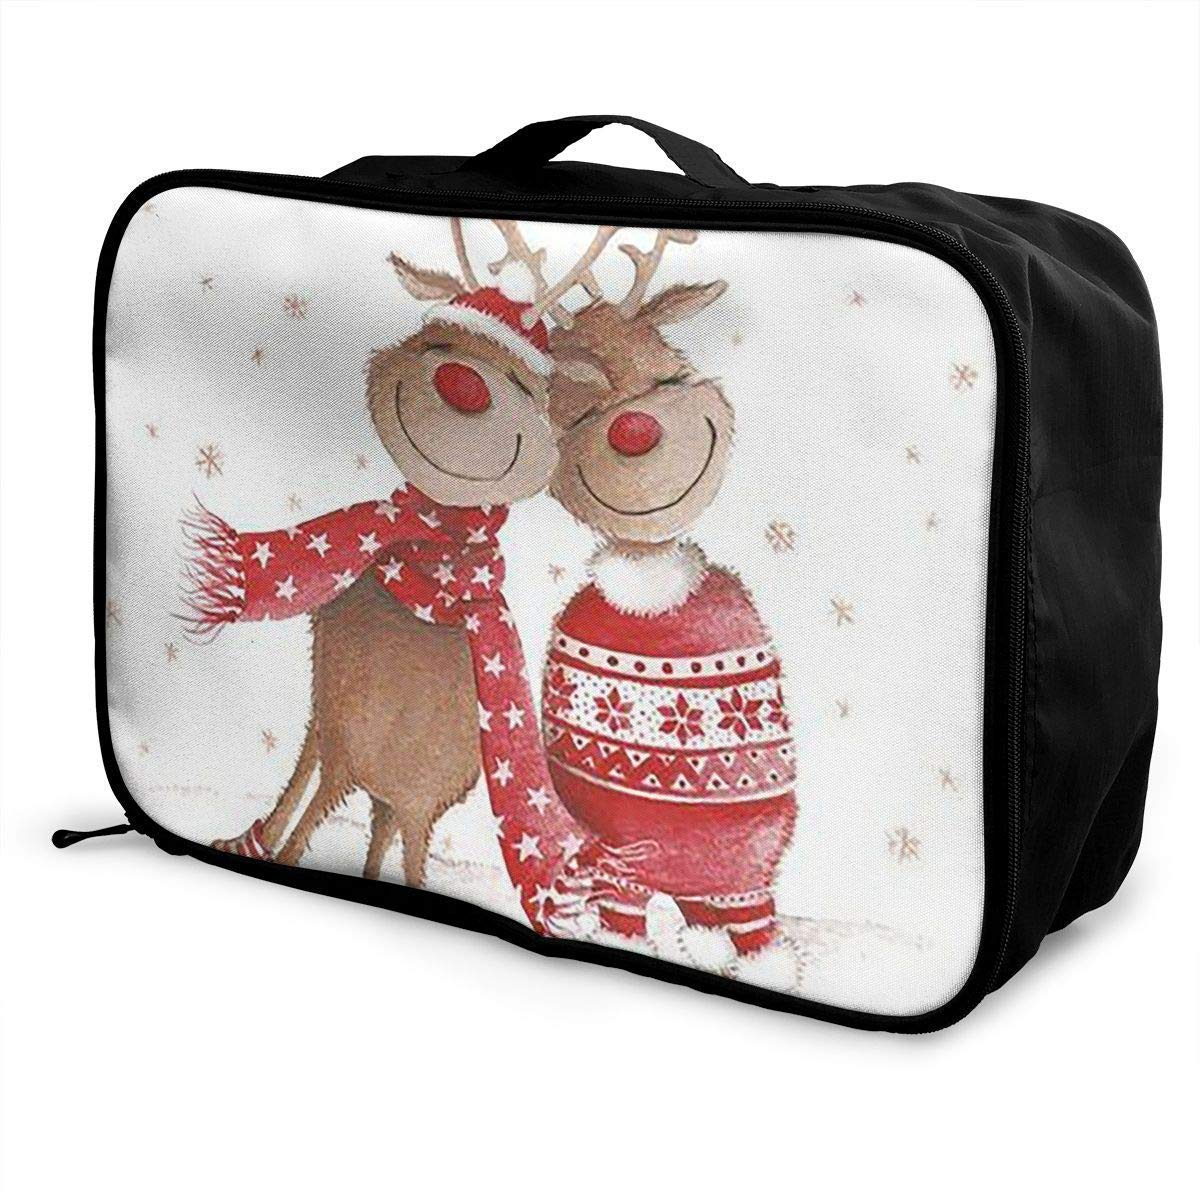 JTRVW Luggage Bags for Travel Portable Luggage Duffel Bag Merry Christmas Reindeer Travel Bags Carry-on in Trolley Handle